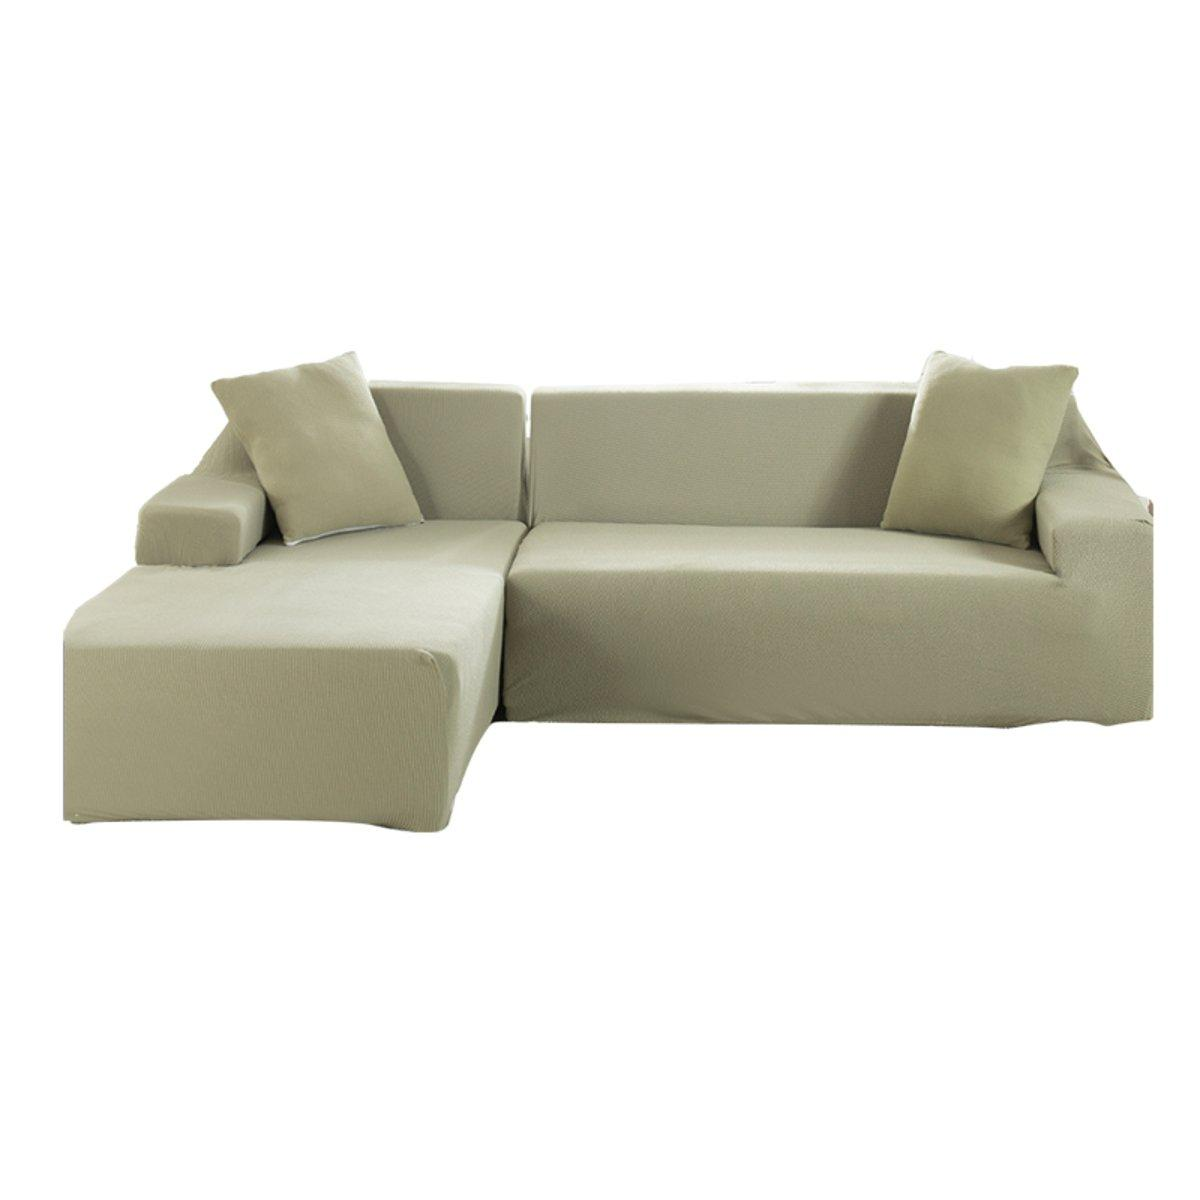 Tremendous 3 Seat L Shape Stretch Elastic Fabric Sofa Covers Elastic Sectional Corner Couch Slipcovers Dailytribune Chair Design For Home Dailytribuneorg